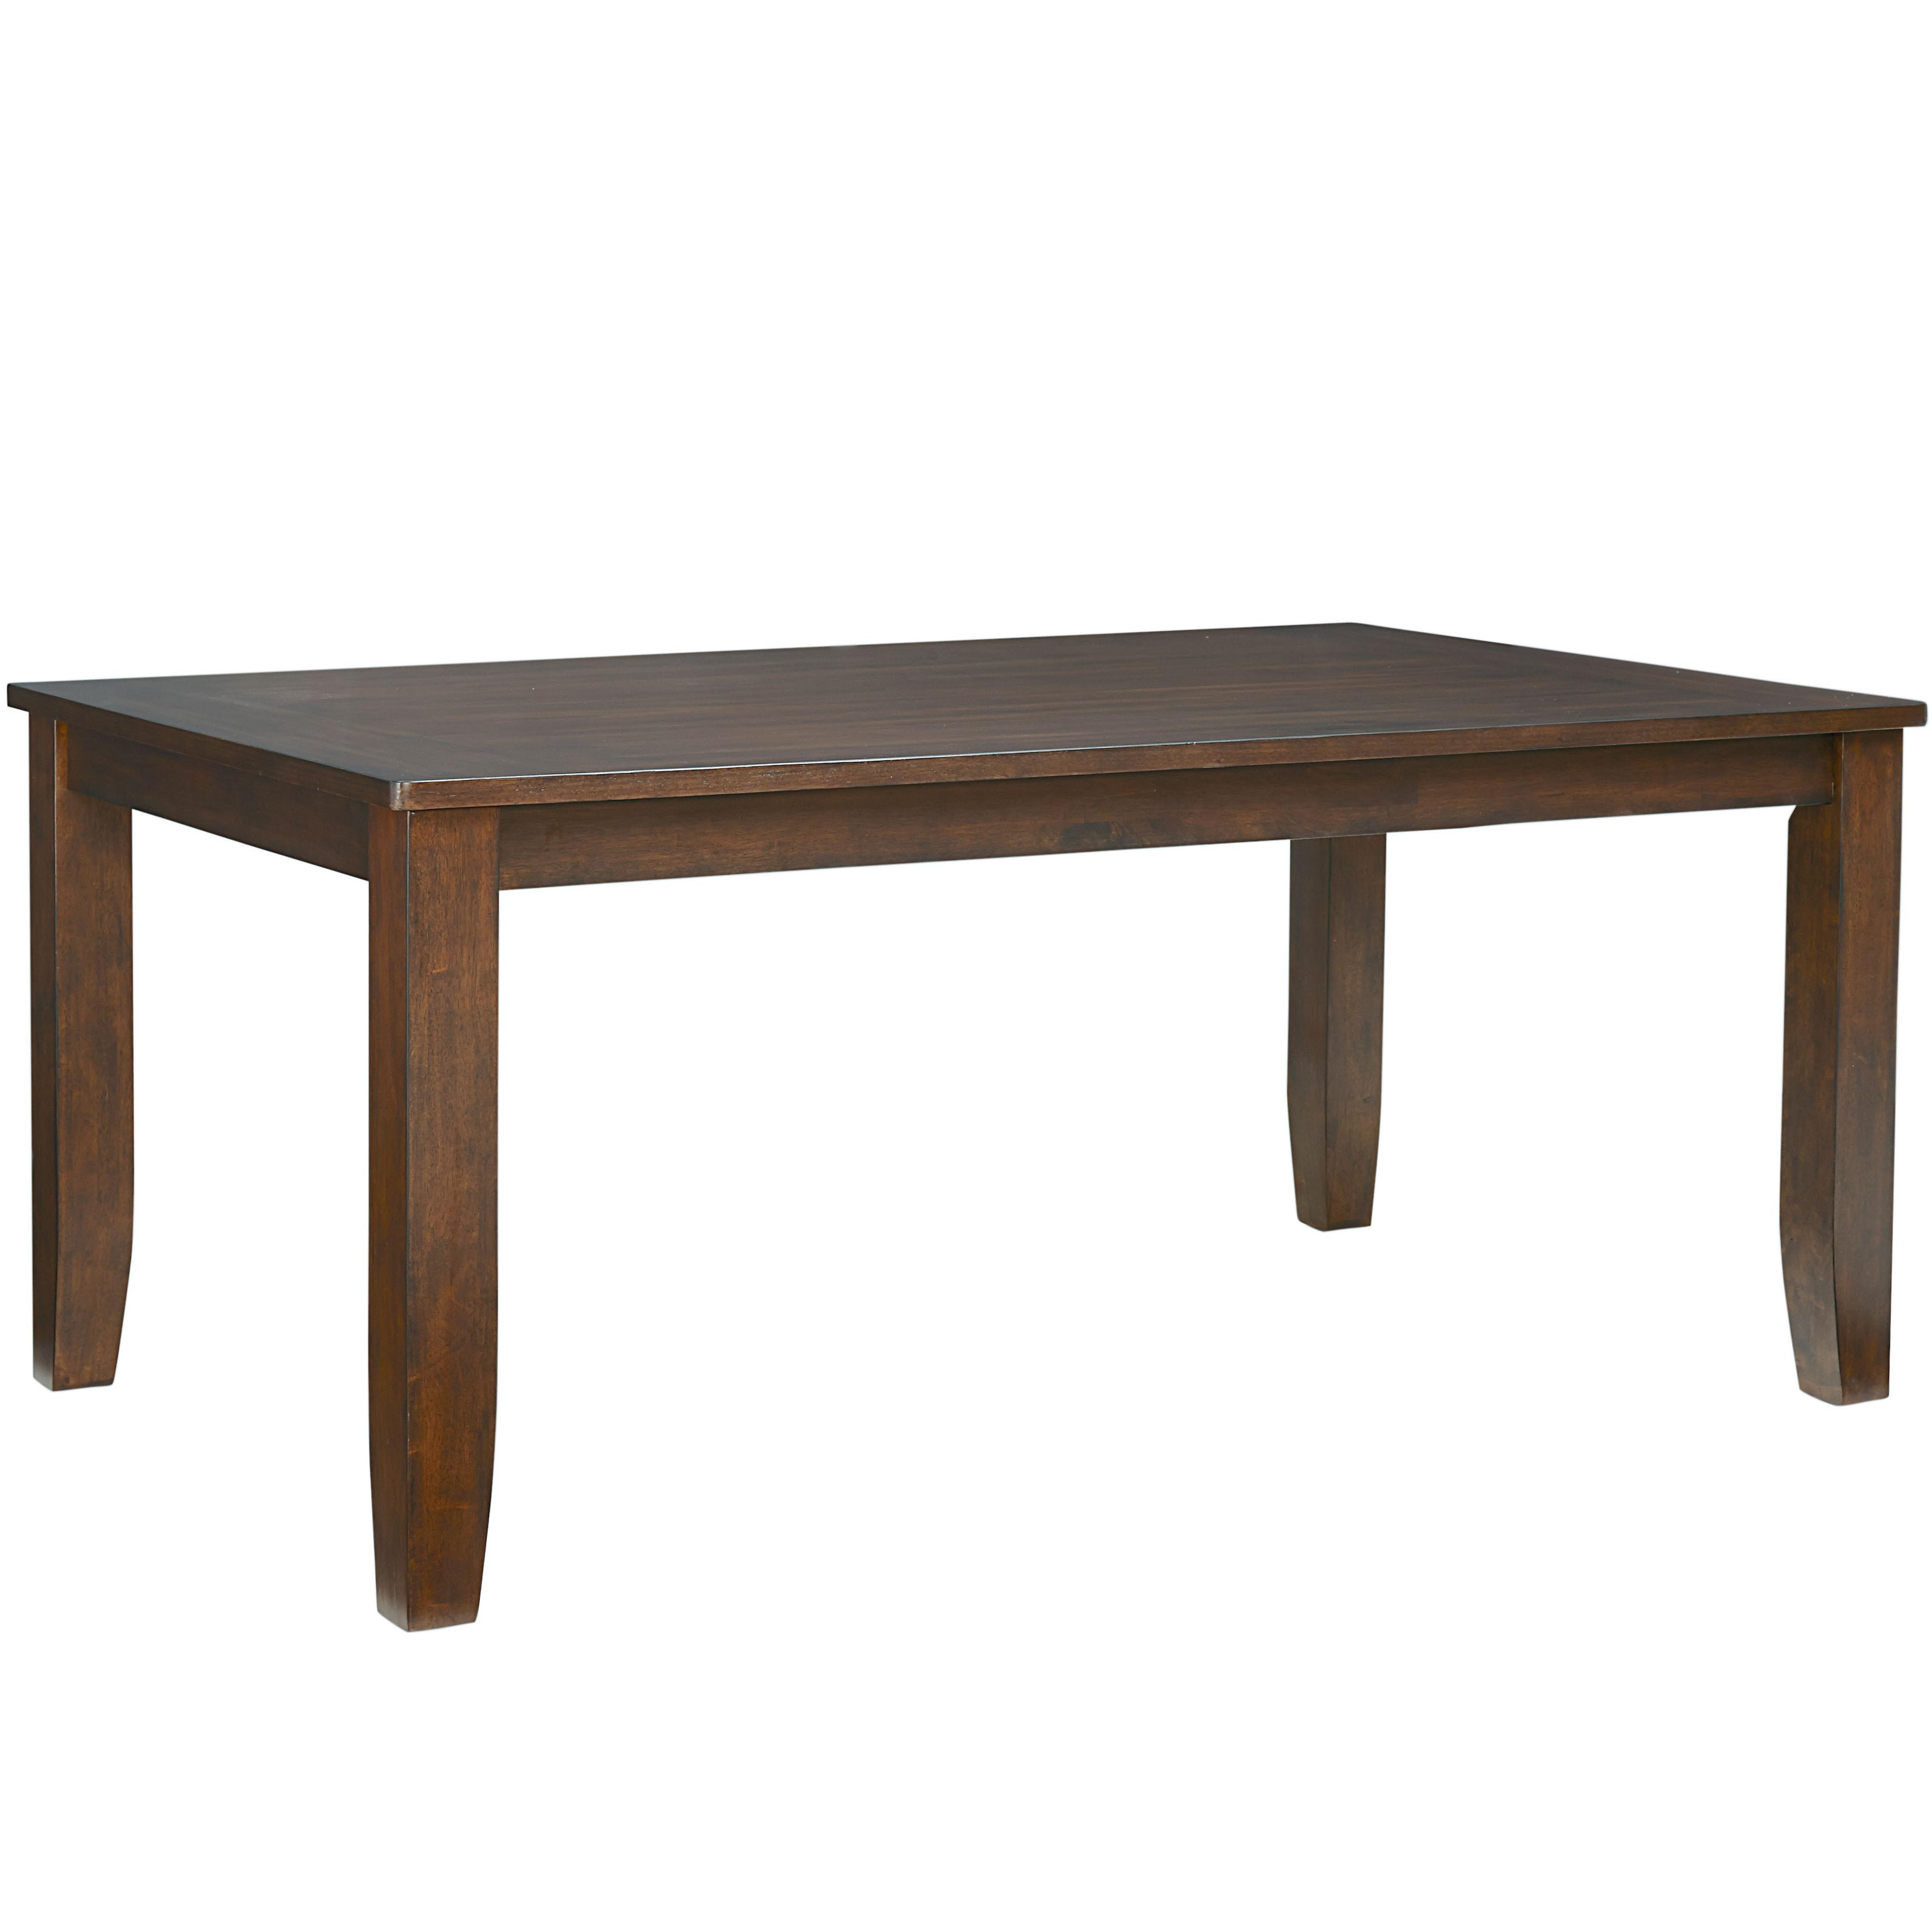 Dining Table With Tapered Feet Vintage By Standard Furniture Wilcox Furniture Dining Room